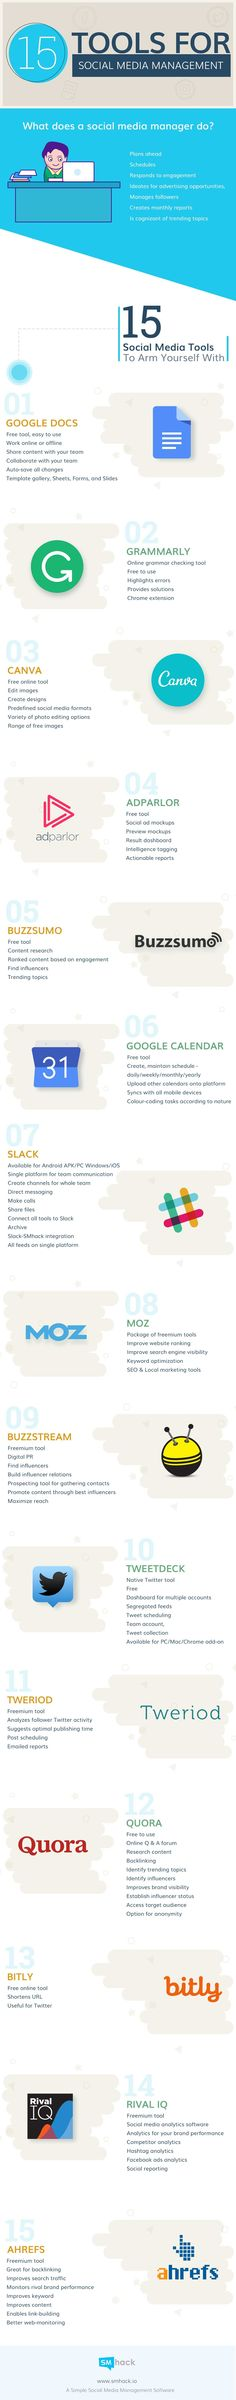 15 Top Tools for Social Media Managers to Save Time - #Infographic